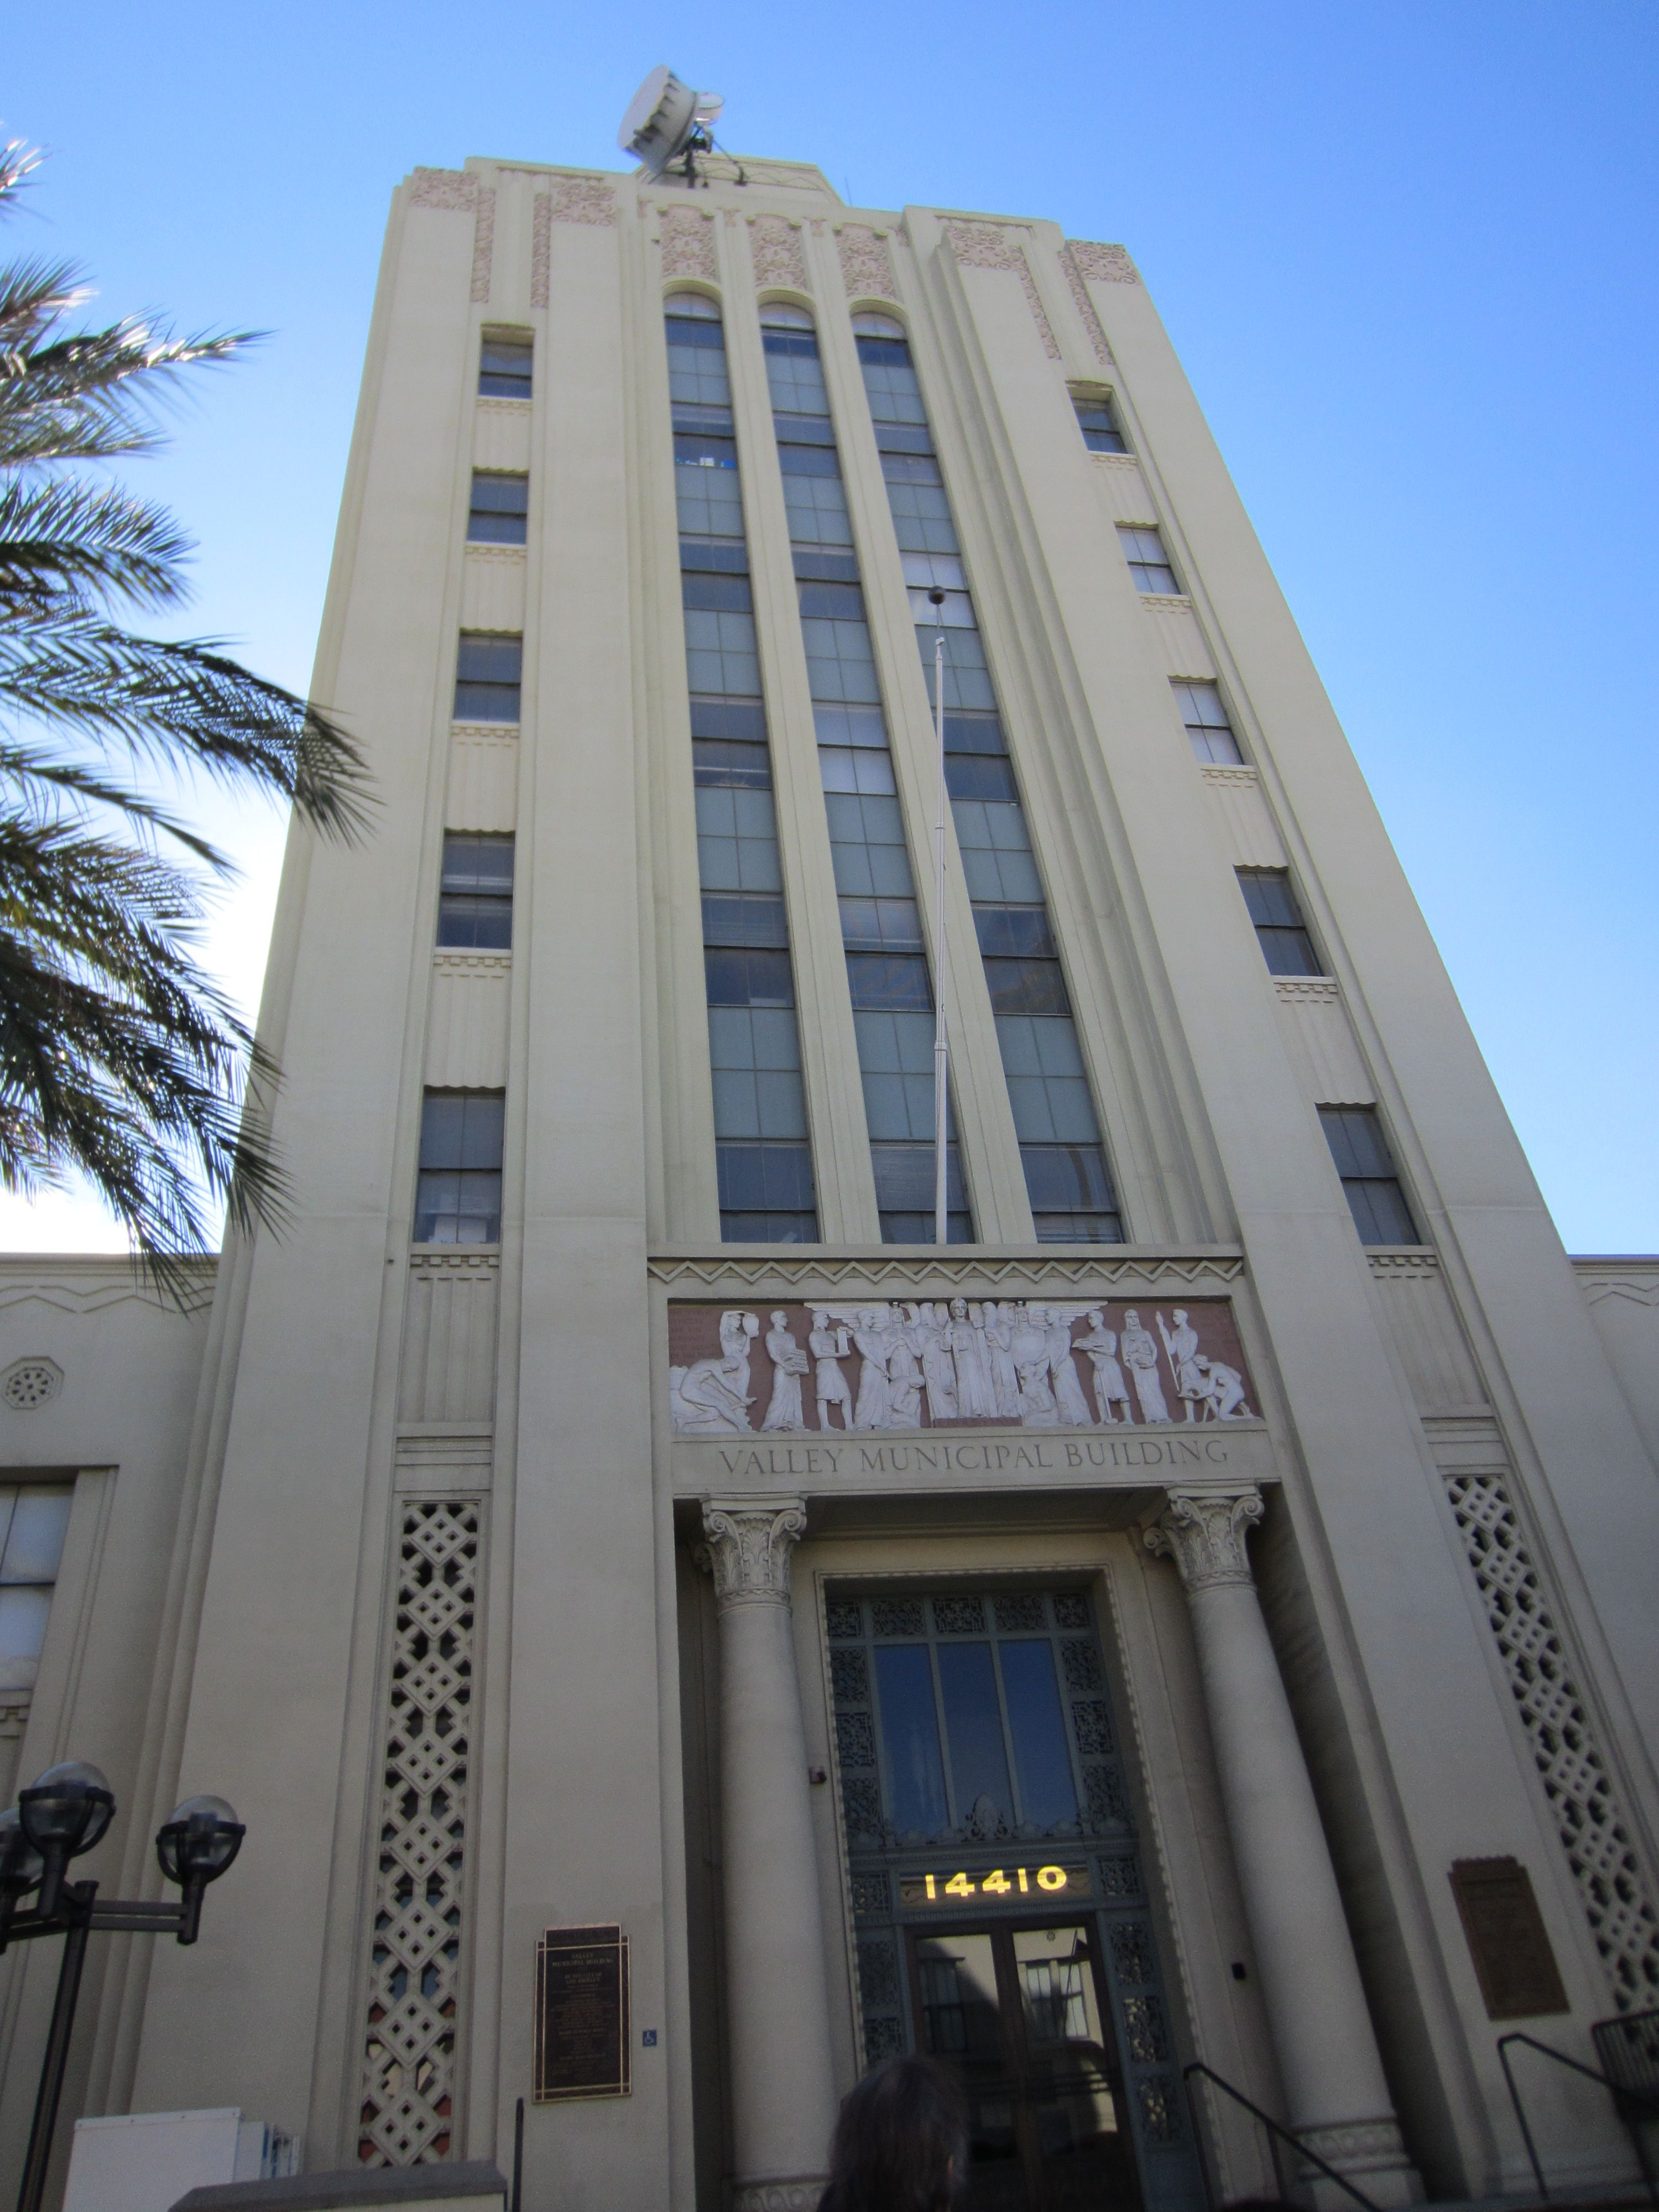 Art Deco In Van Nuys I Have Such A Scandalous Story Of Being In This Courthouse In 1970 But My Children Would Be In Total Shock Ca History Van Nuys Places